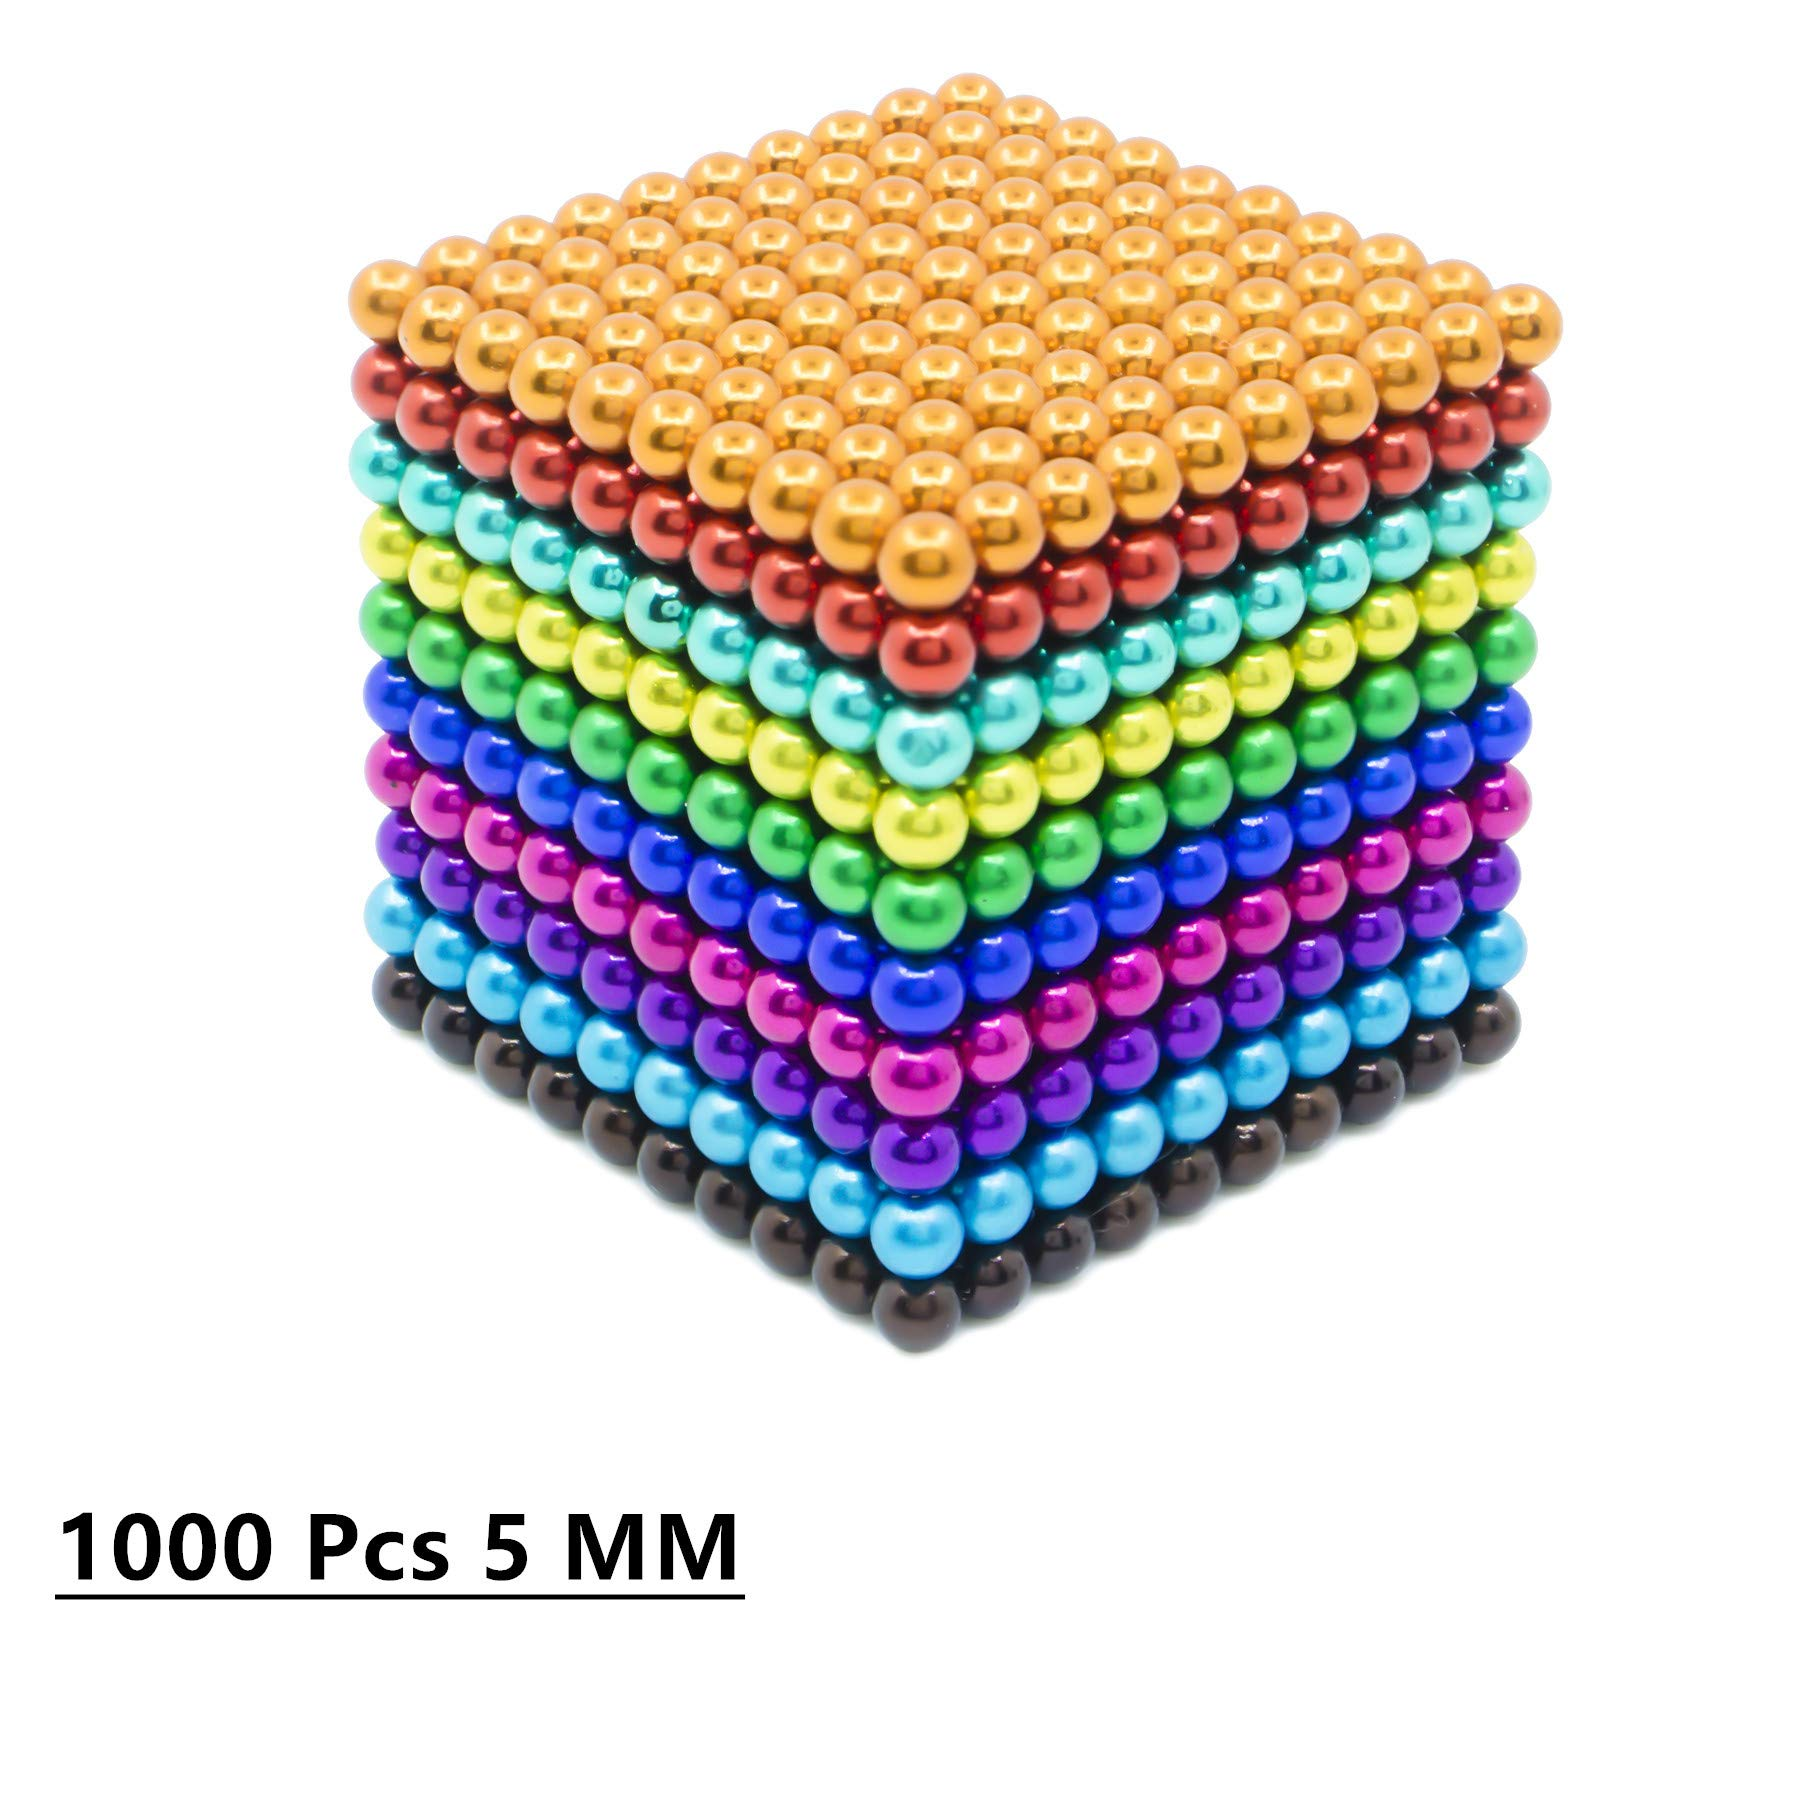 sunsoy 1000 Pieces 5mm Sculpture Building Blocks Toys for Intelligence Learning -Office Toy & Stress Relief for Adults Colorful